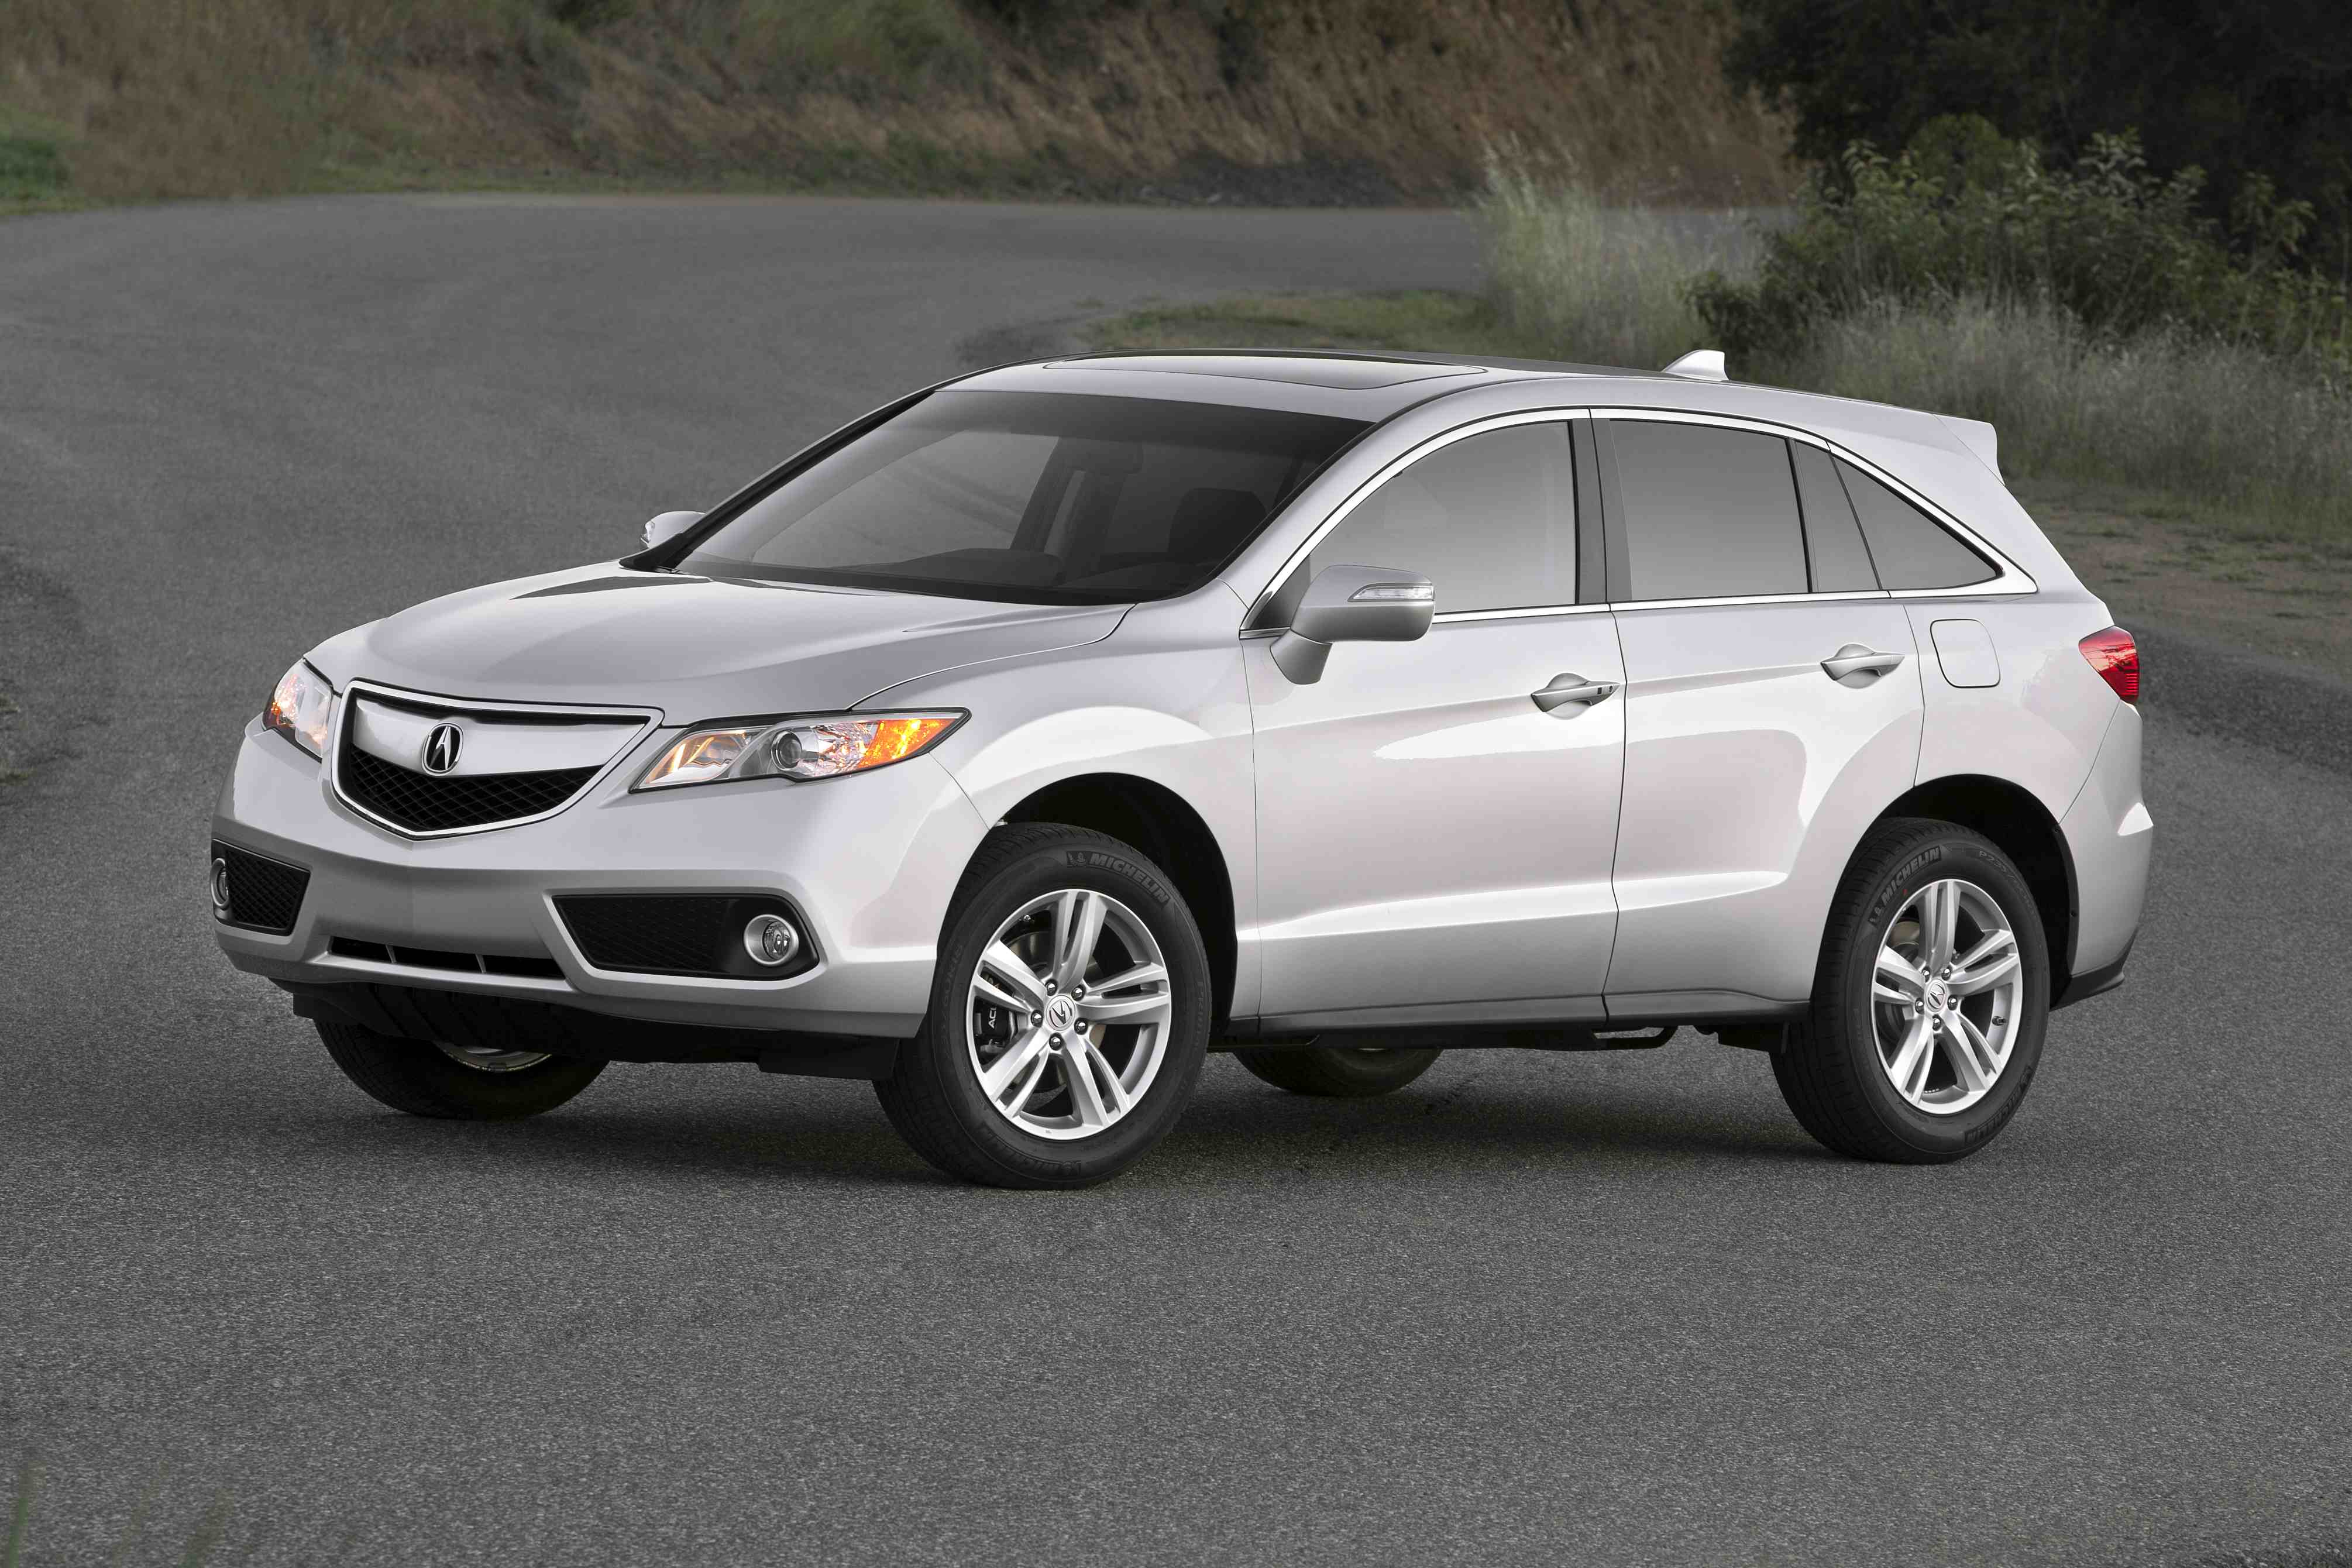 acura used htm sport tech for natick serving in sale ma pkg rdx utility